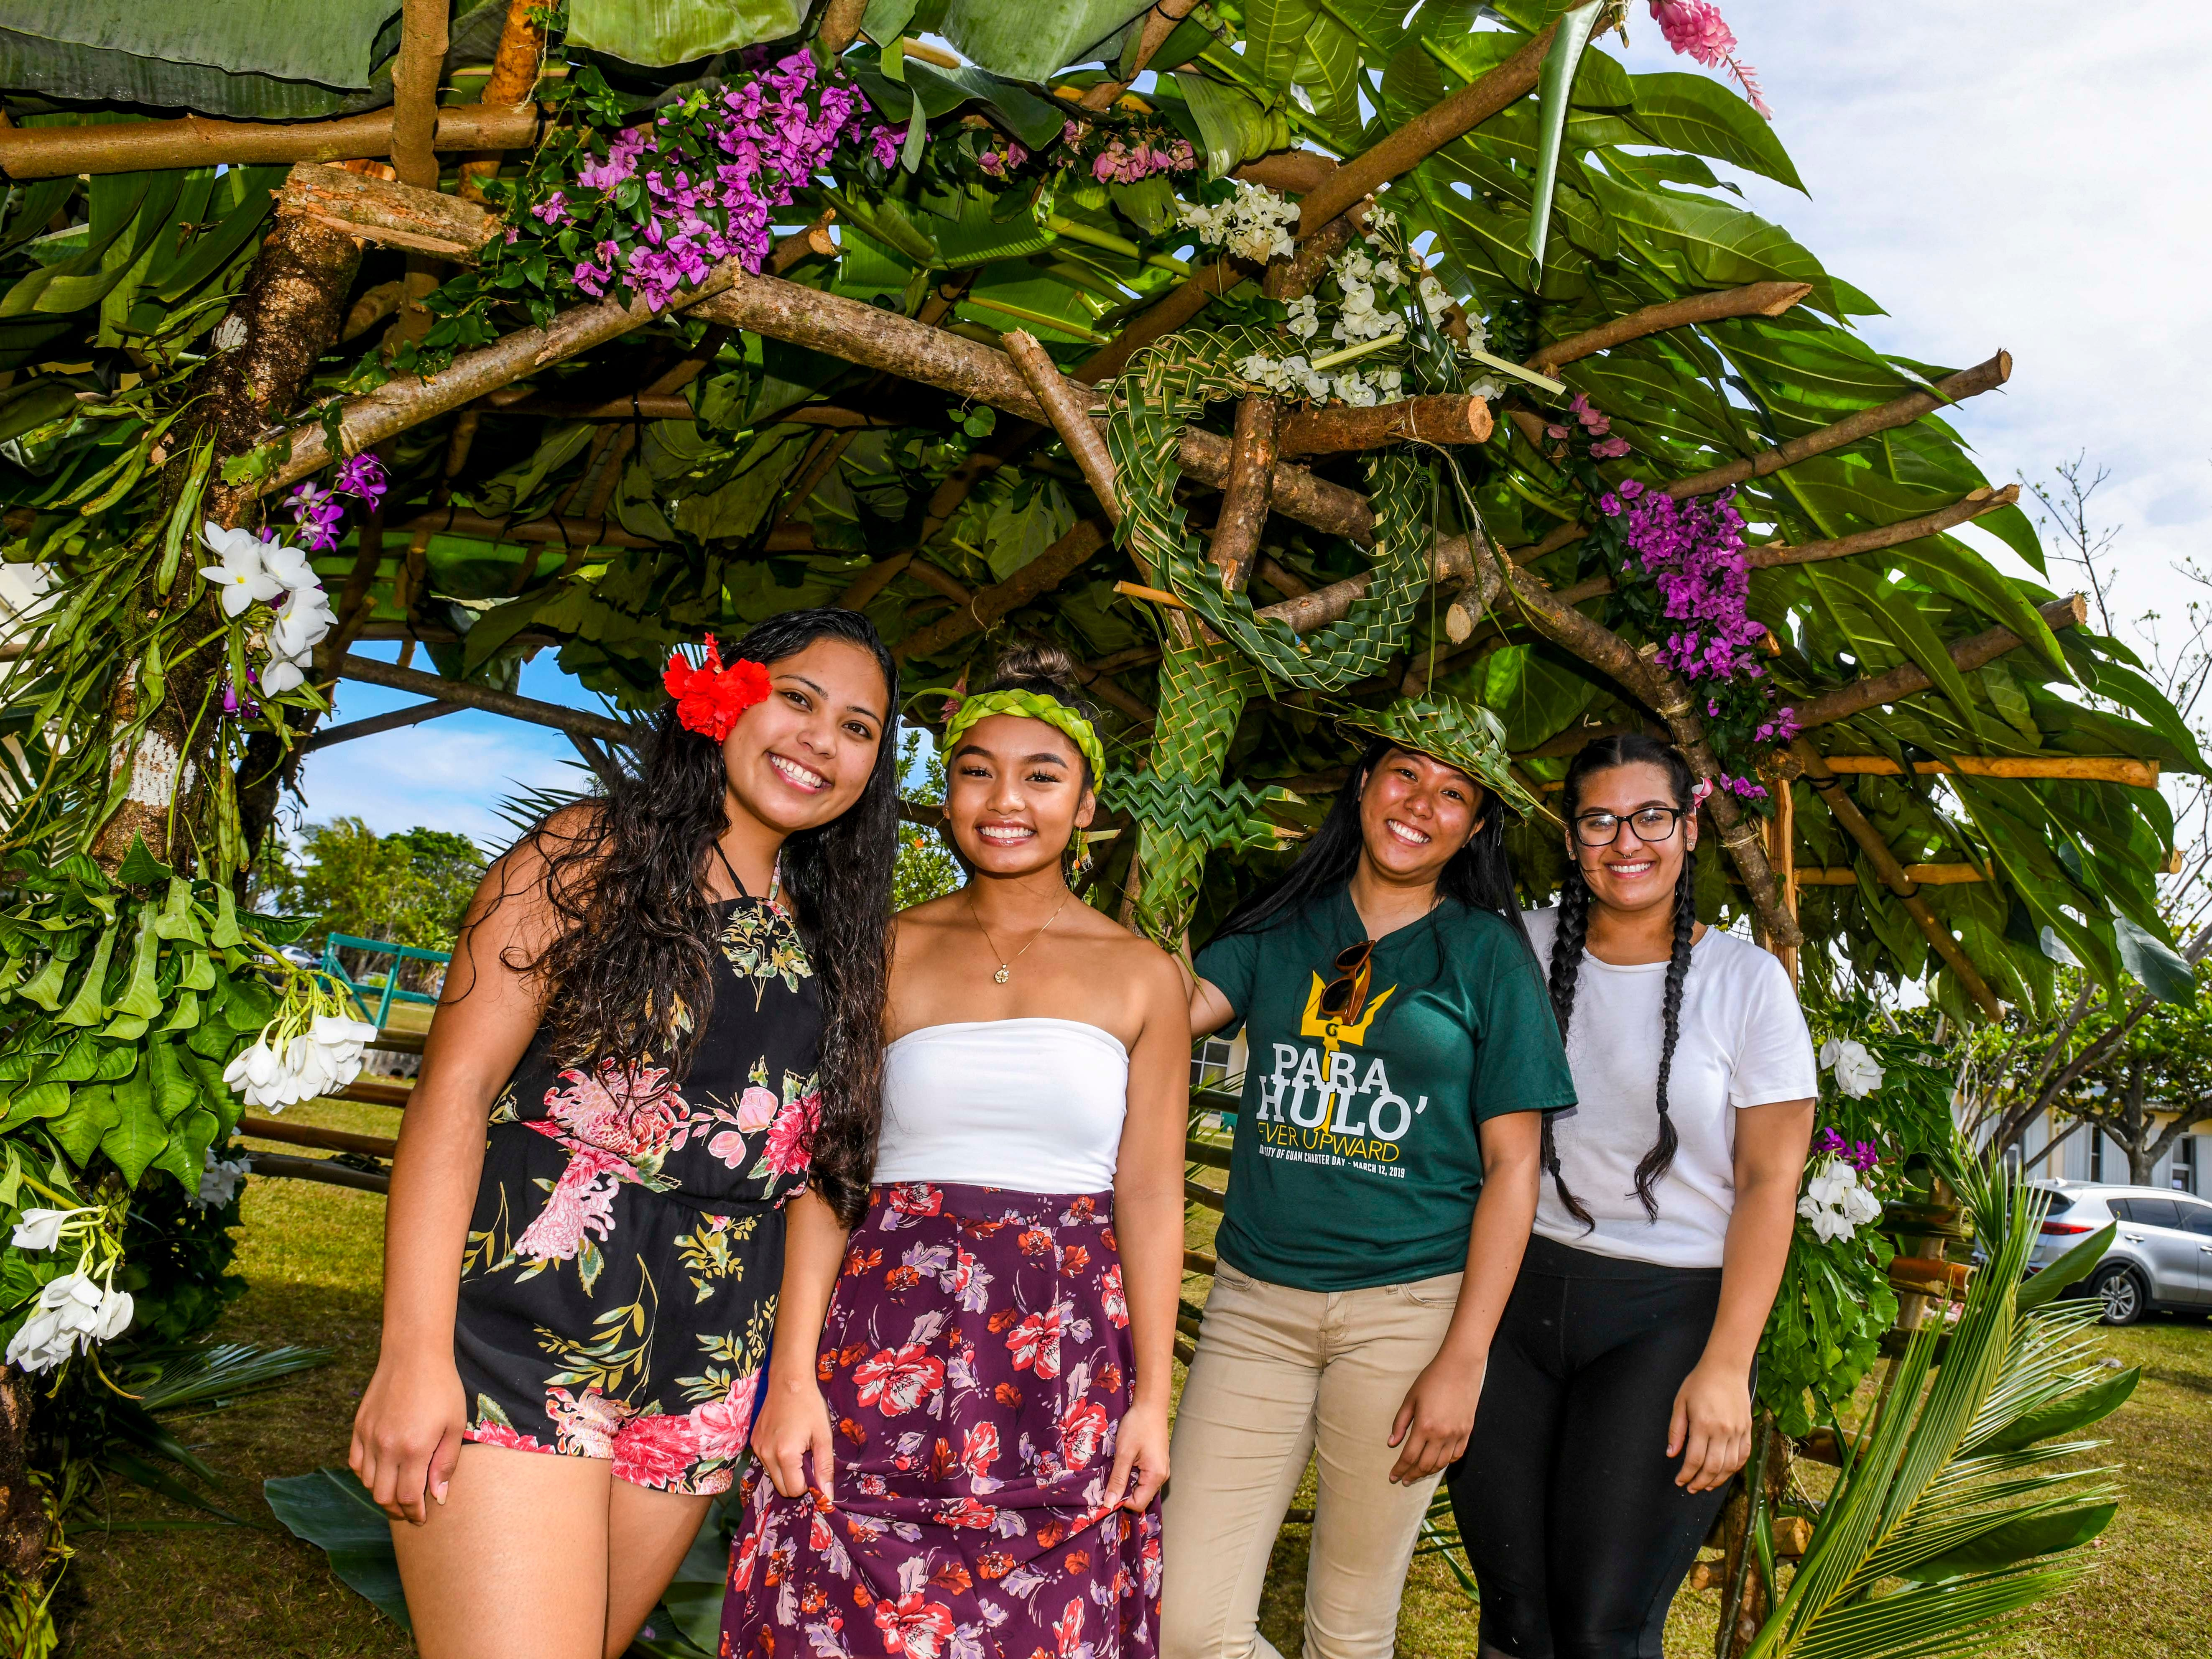 Bali Field School sociology students stand to greet visitors to their hut during the University of Guam's 51st Charter Day celebration in Mangilao on Tuesday, March 12, 2019. The students wanted to especially bring attention to the female symbol to express their feminism, woven from coconut leaves and positioned prominently high at the front of the structure.